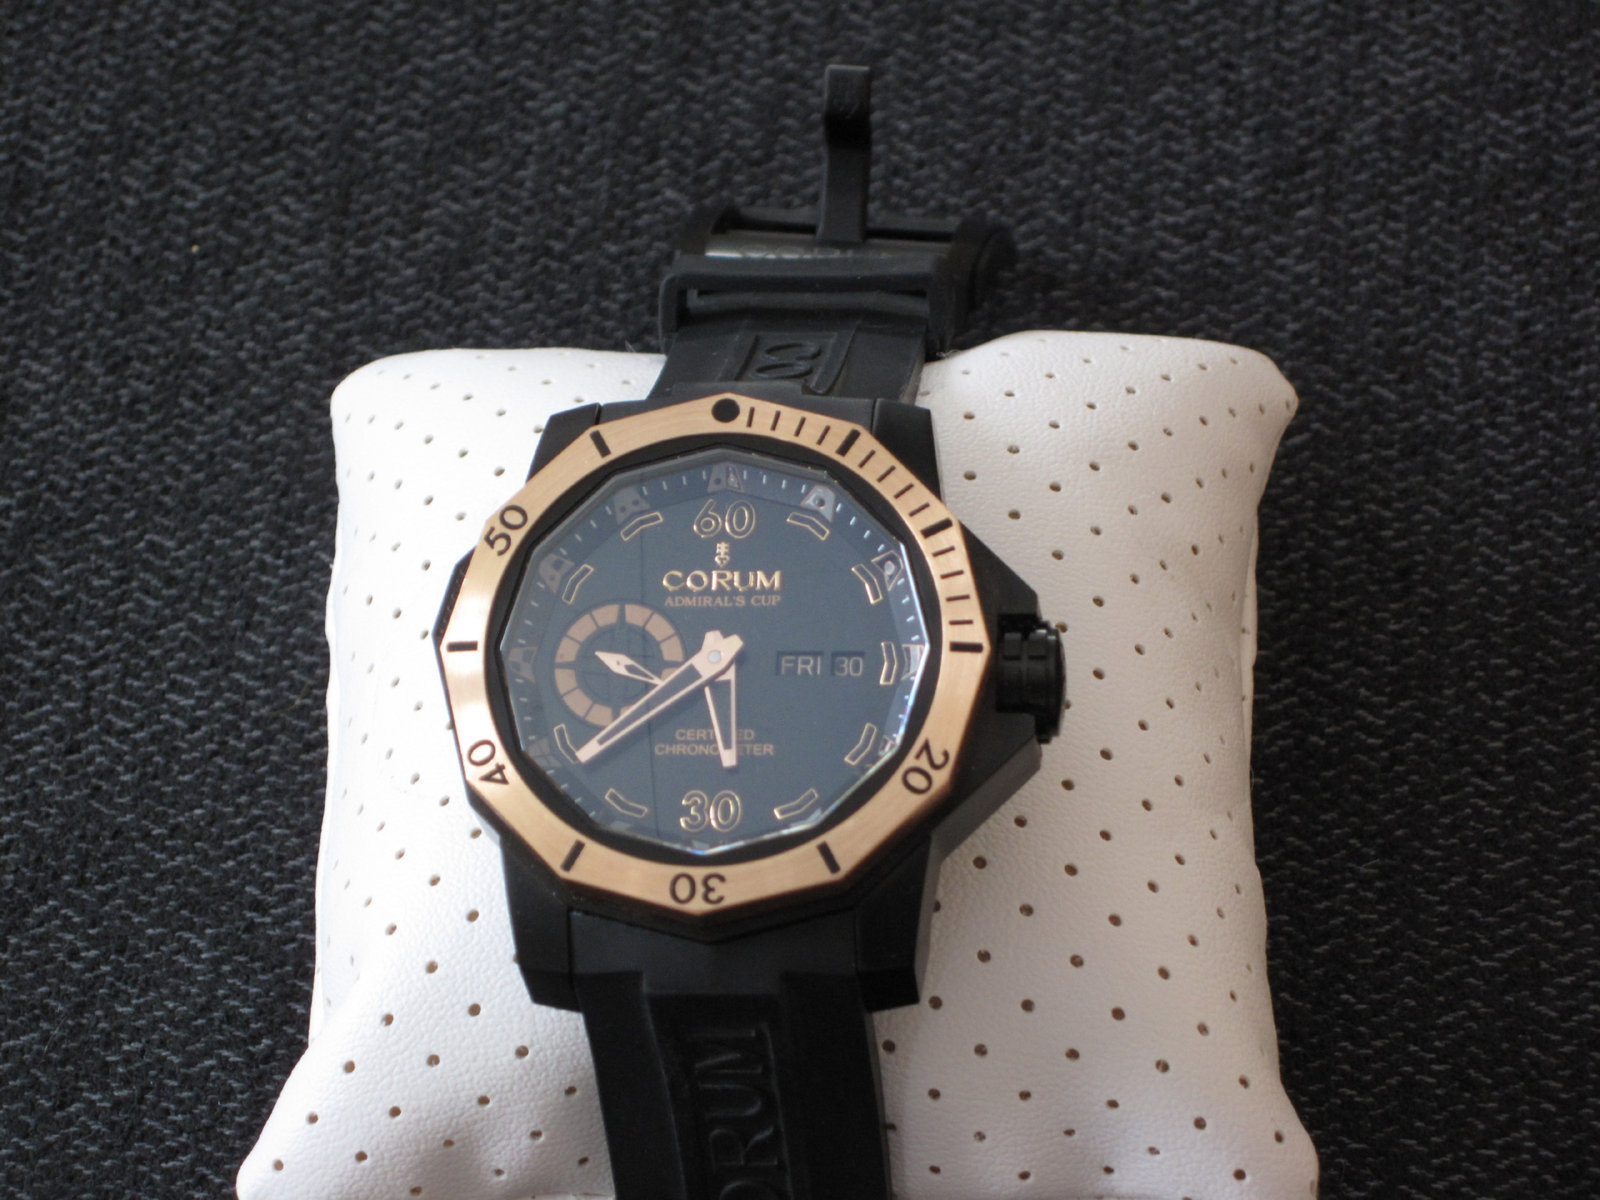 Corum Admiral's Cup Seafender 48 Deep Dive limited ed 019-100 front.jpg